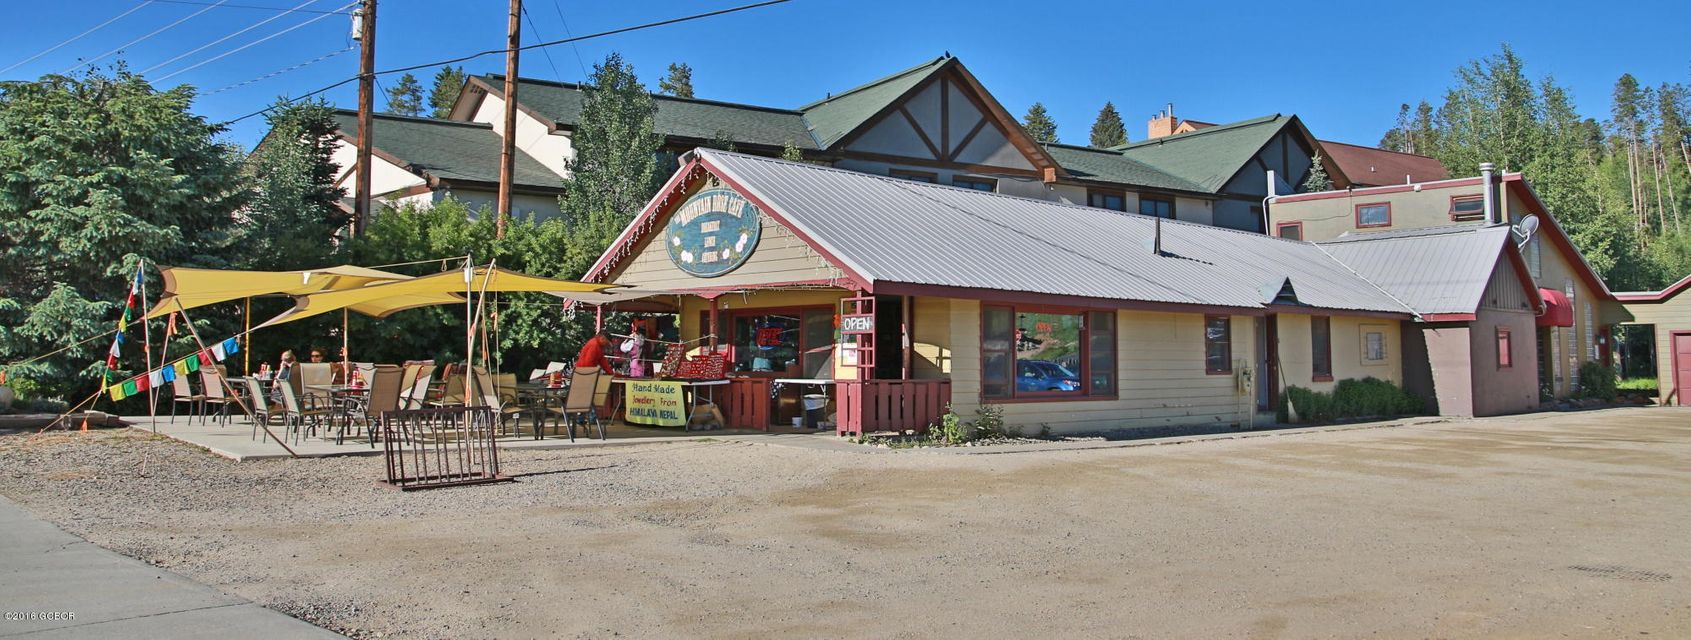 078542 US Hwy 40, Winter Park, CO 80482